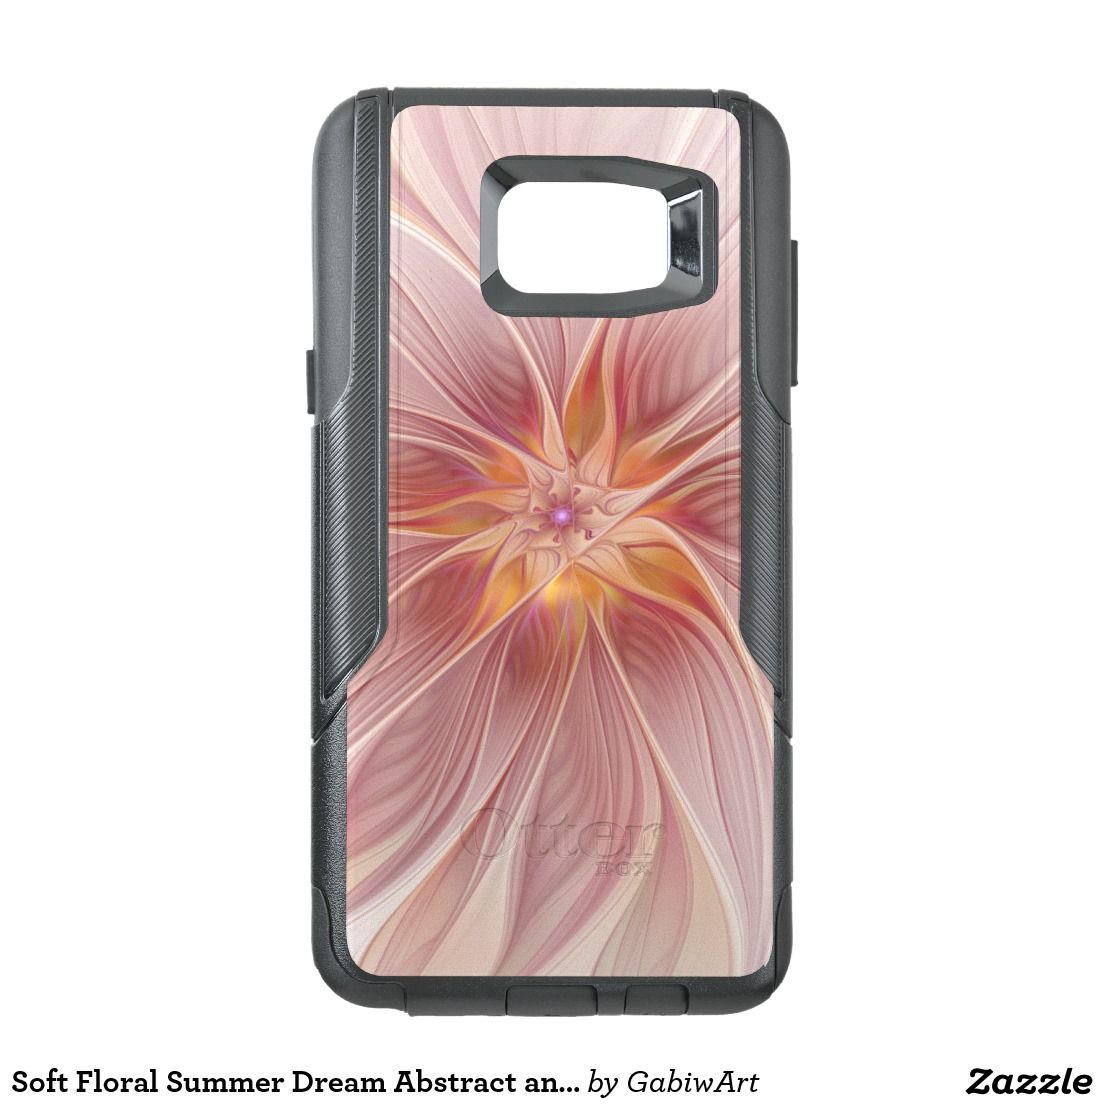 Soft Floral Summer Dream Abstract and Modern Art OtterBox Samsung Note 5 Case